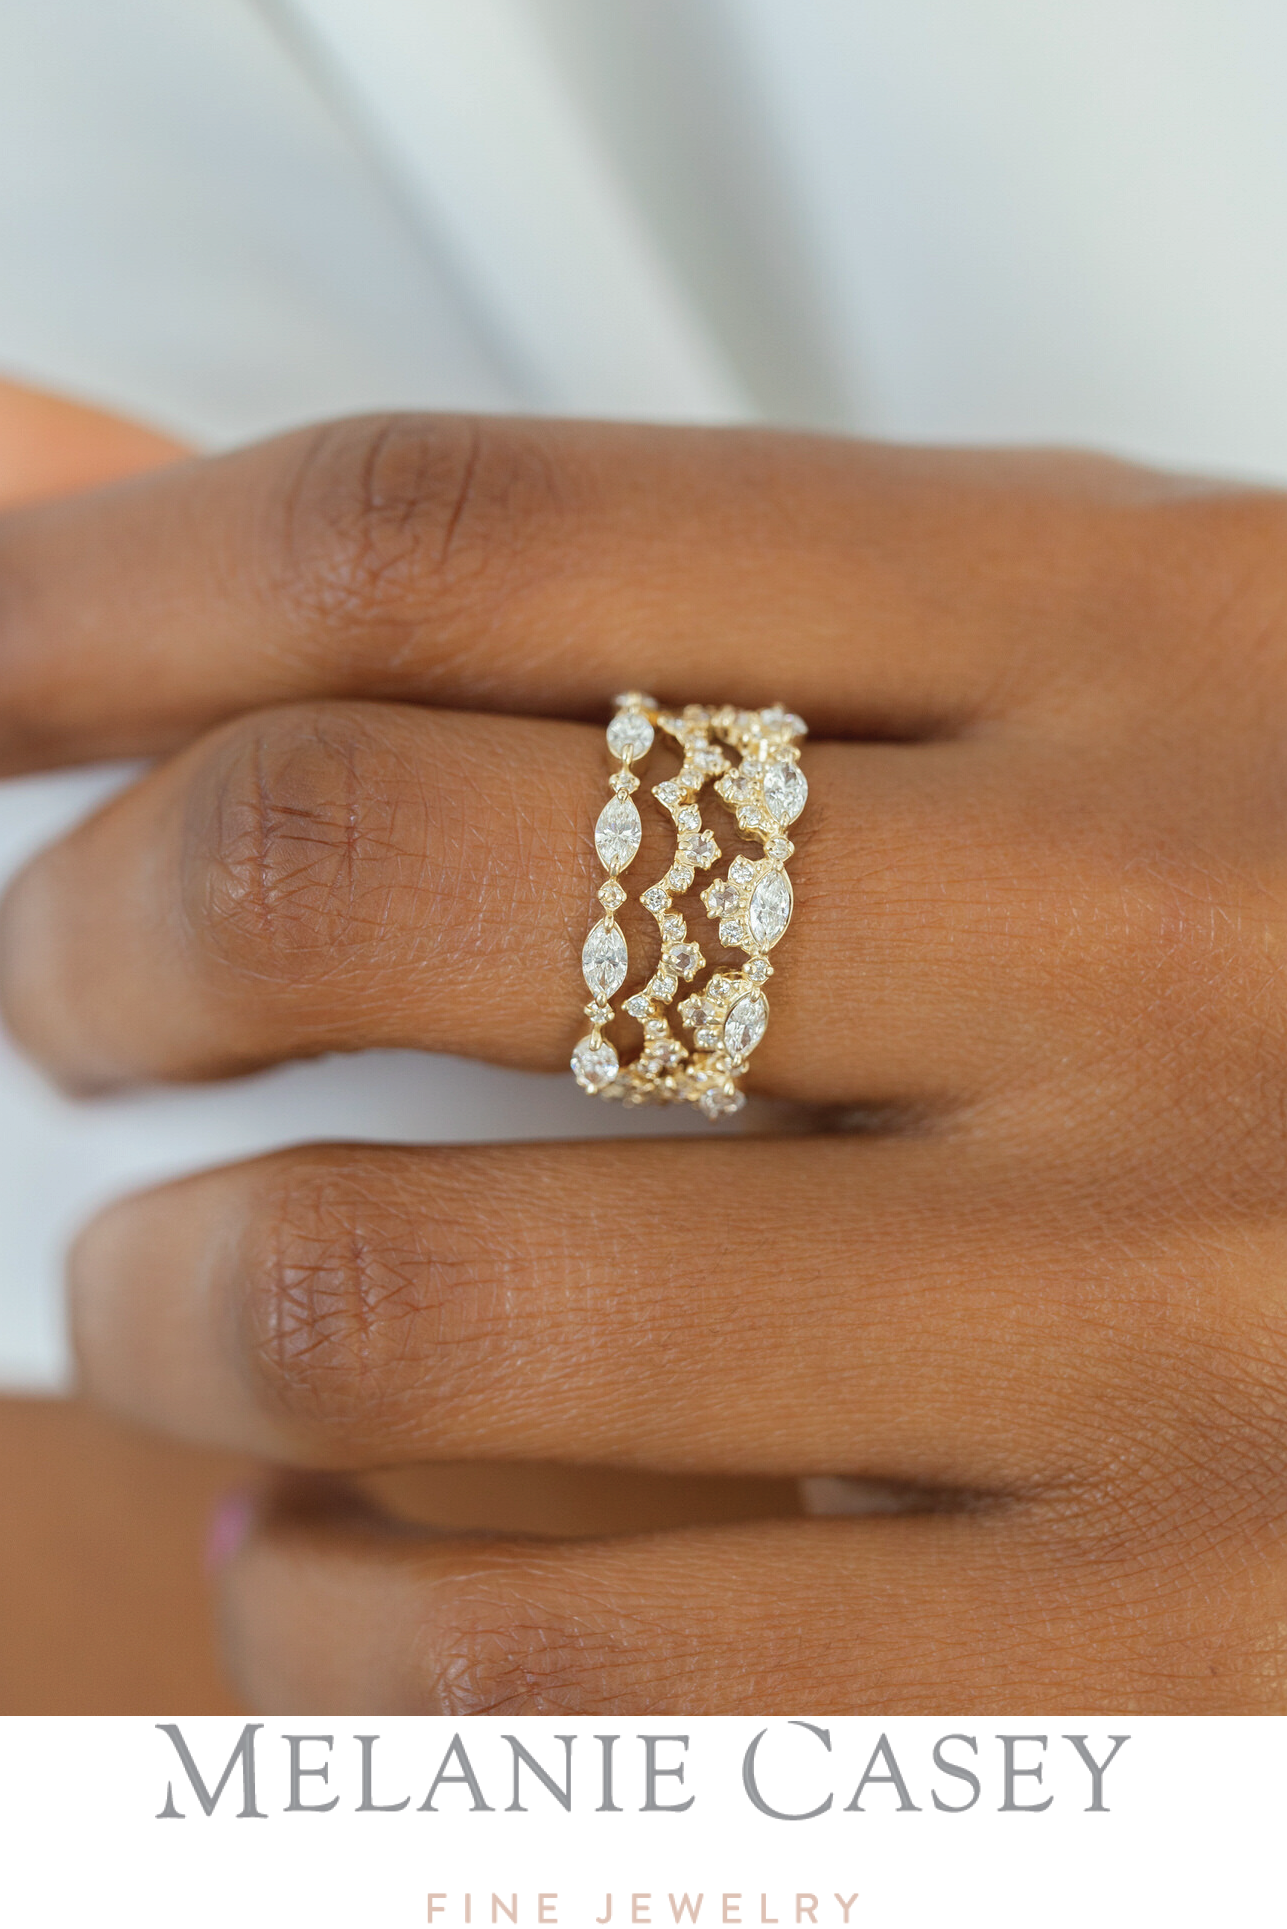 Diamond Interwoven Band, Lace Edge Ring, Chantilly Band. All in 14k yellow gold, with white diamonds. Find these stacking rings and more at melaniecasey.com! #stackingrings #ringstack #fancy #unique #weddingband #yellowgold